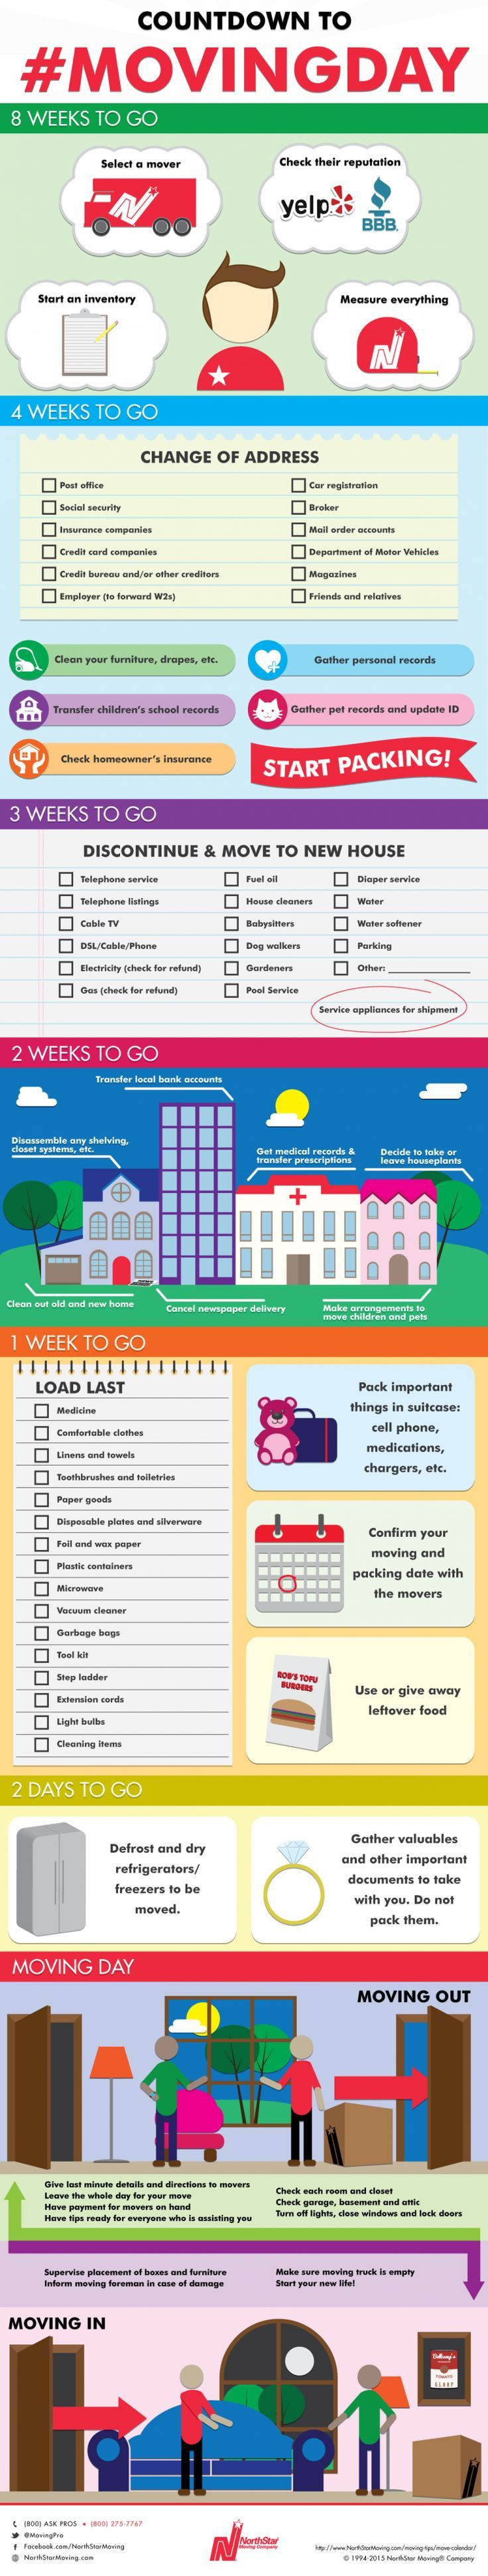 The Ultimate Moving Day Count Down Checklist | Umzug, Einrichtung ...